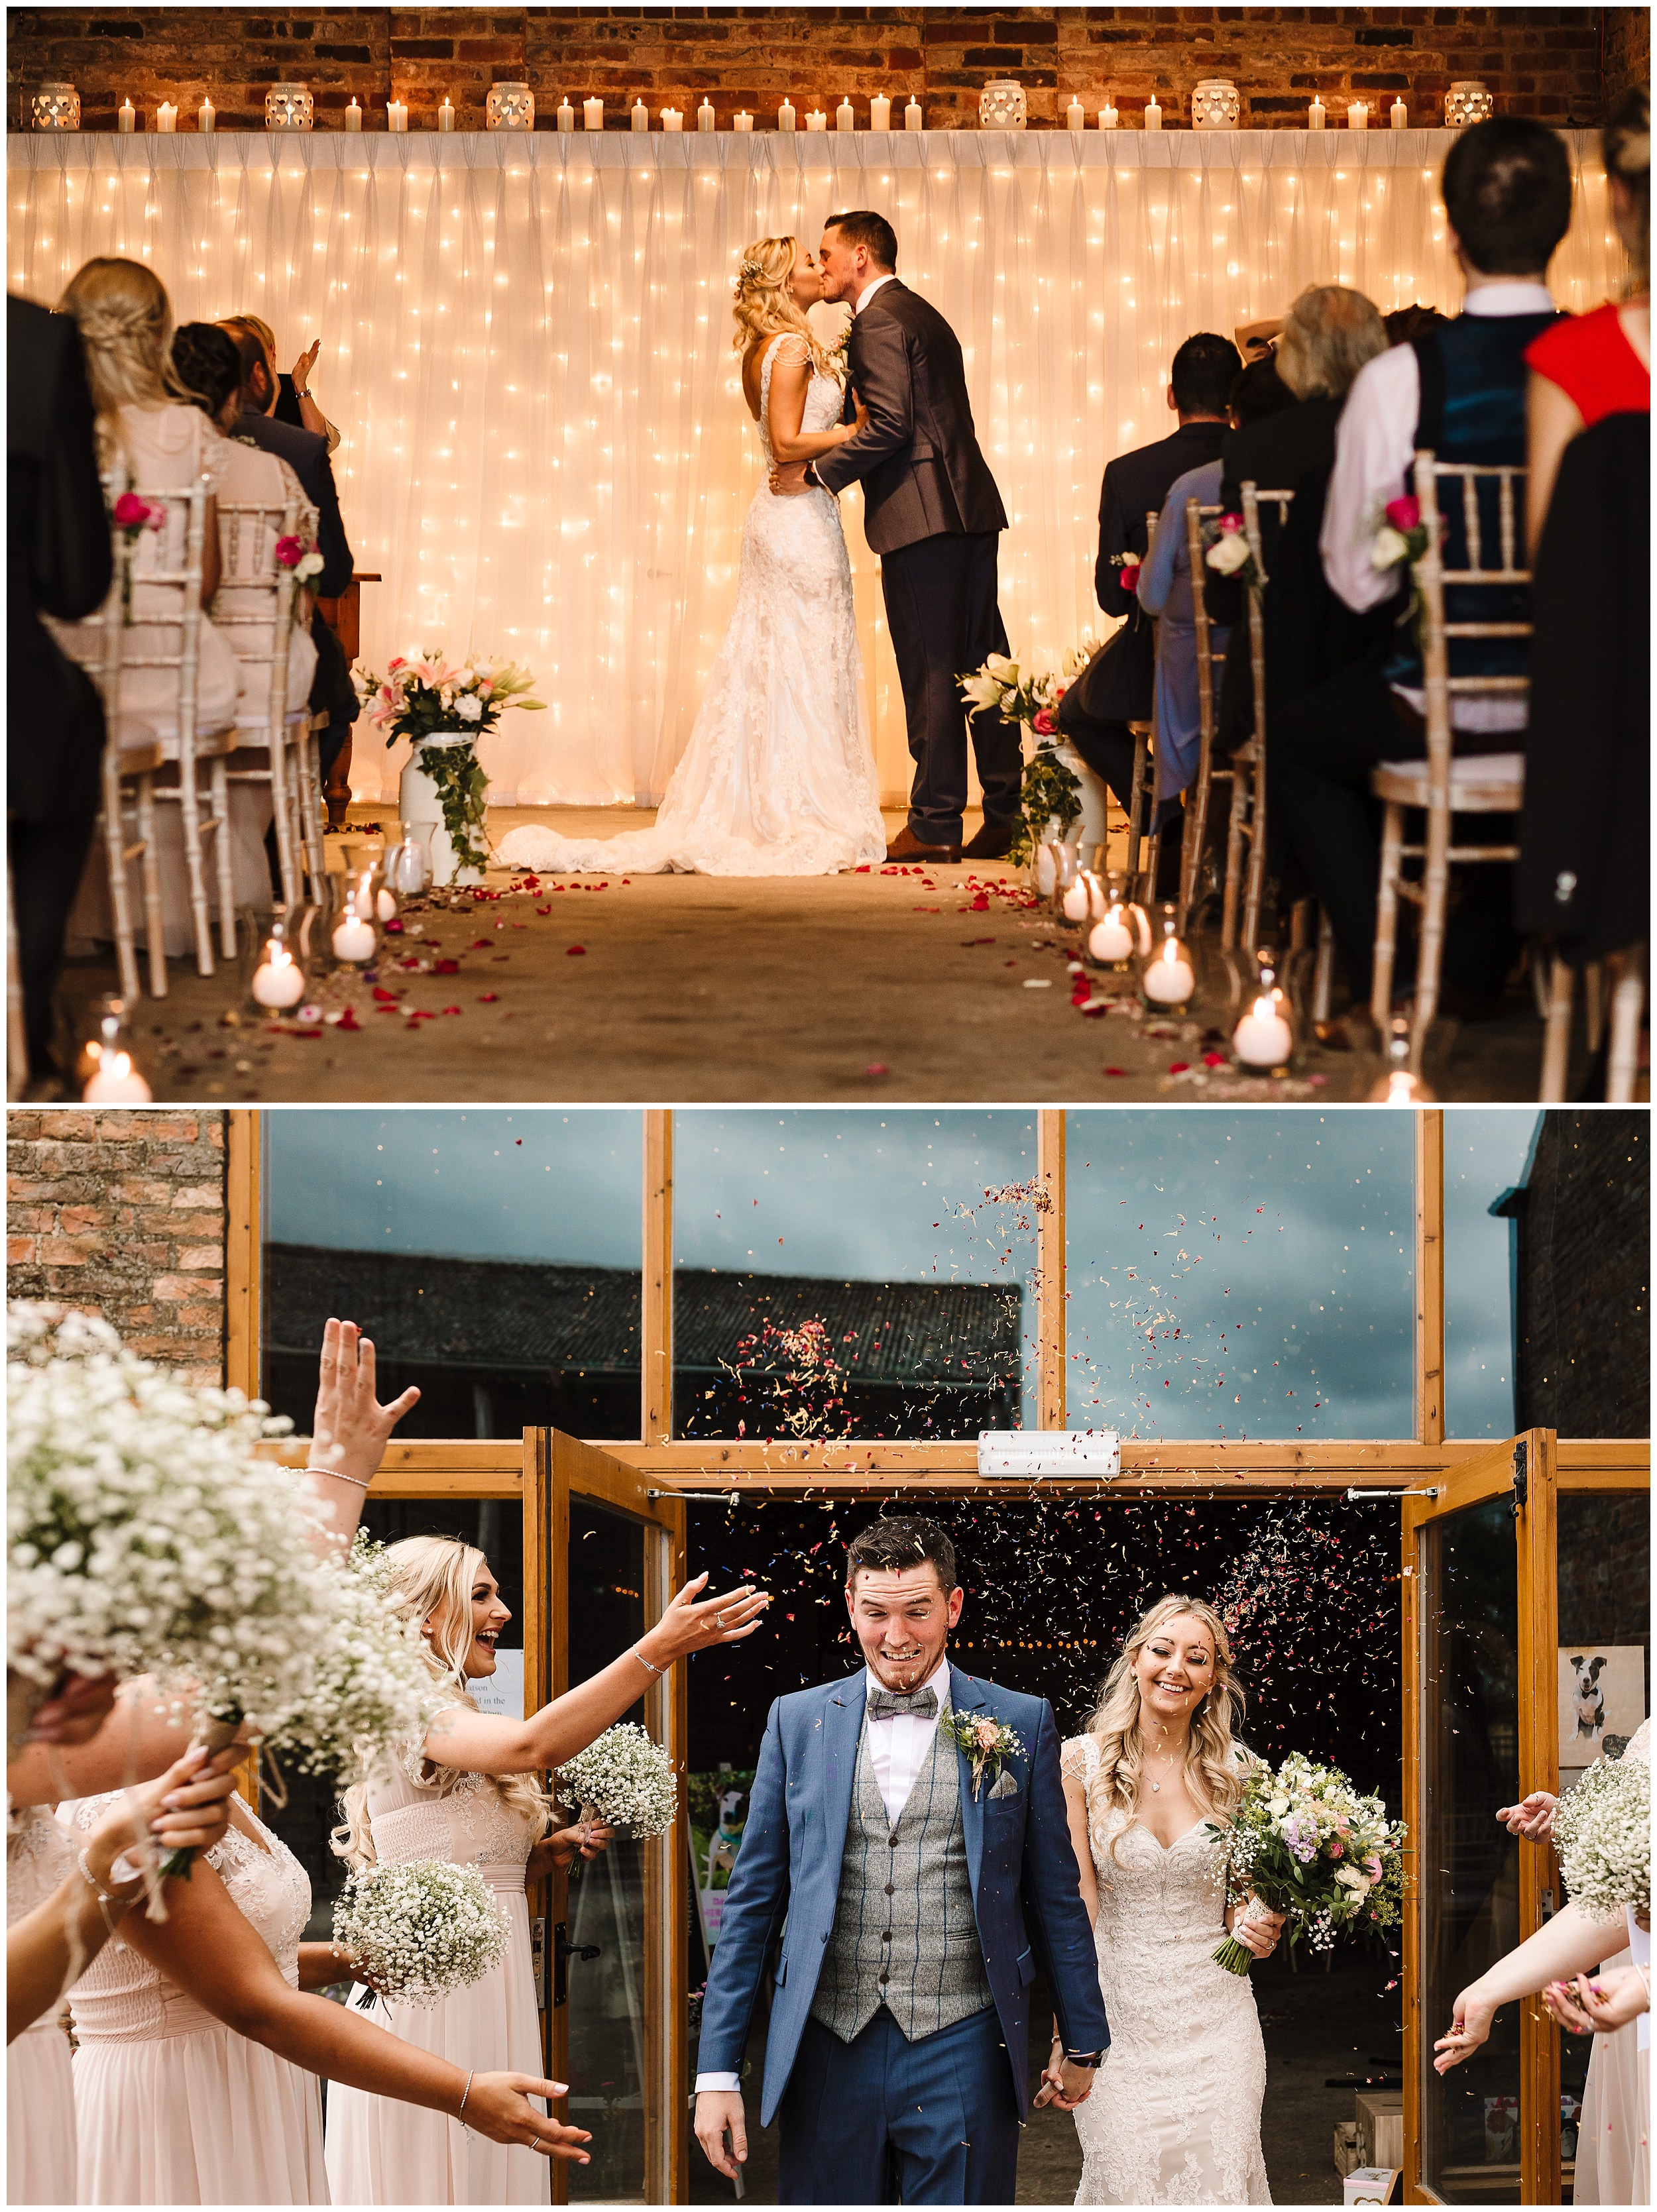 A BRIDE AND GROOM KISSING AND WALKING THROUGH CONFETTI AT BARMBYFIELD BARNS NEAR YORK